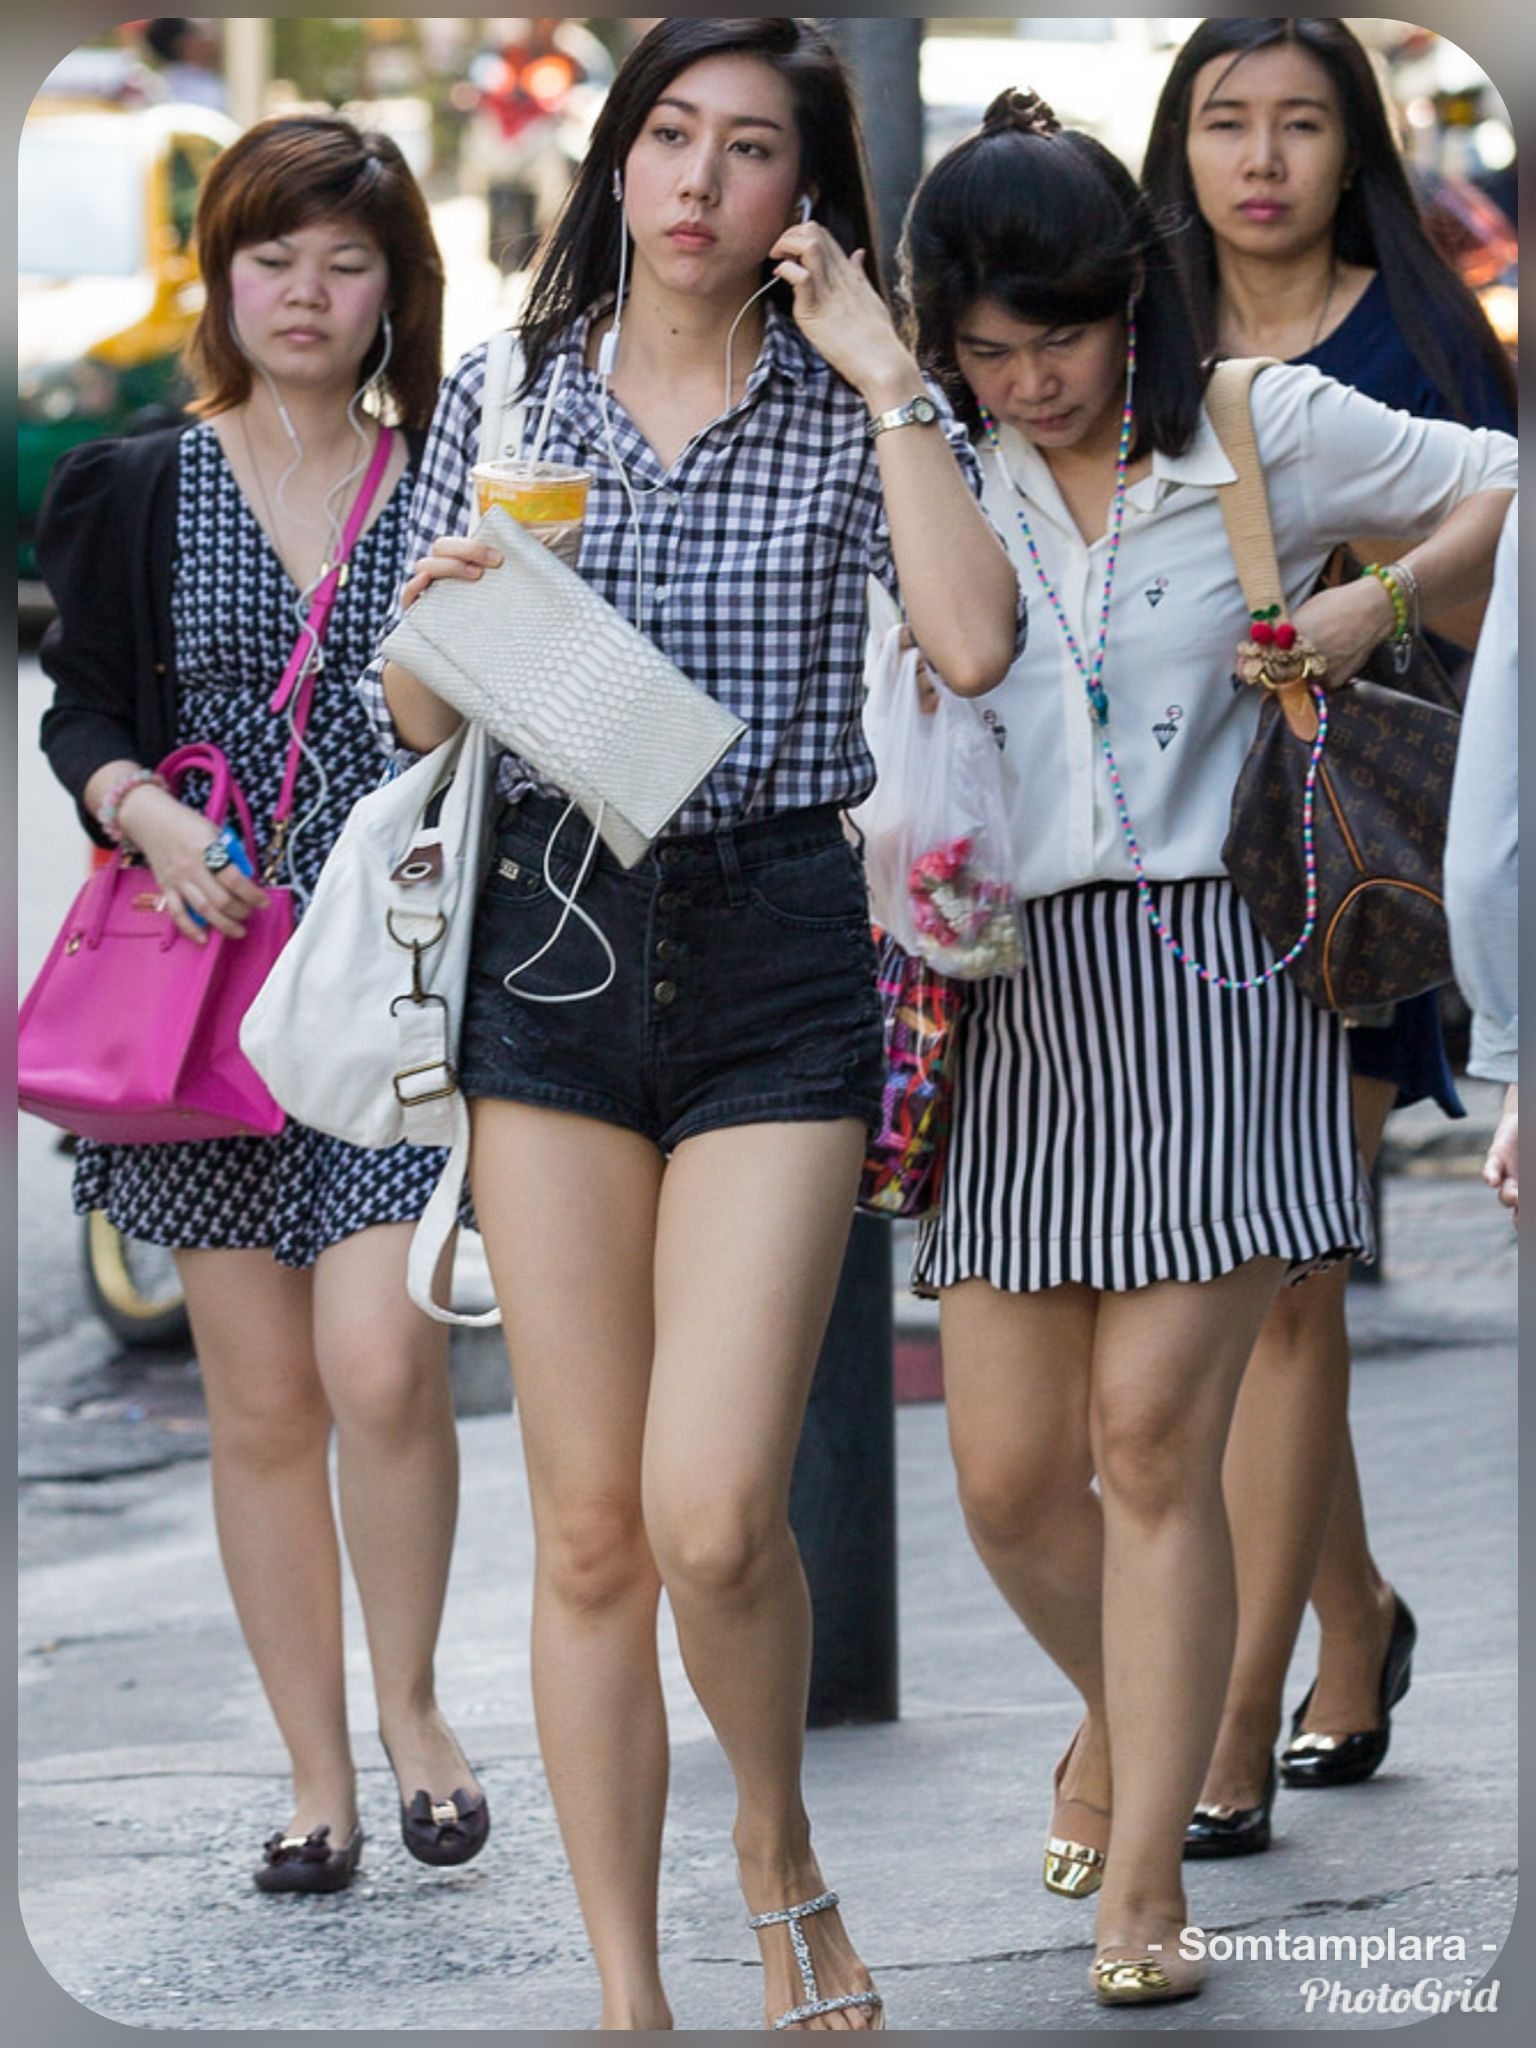 Simply excellent Asian candid leg